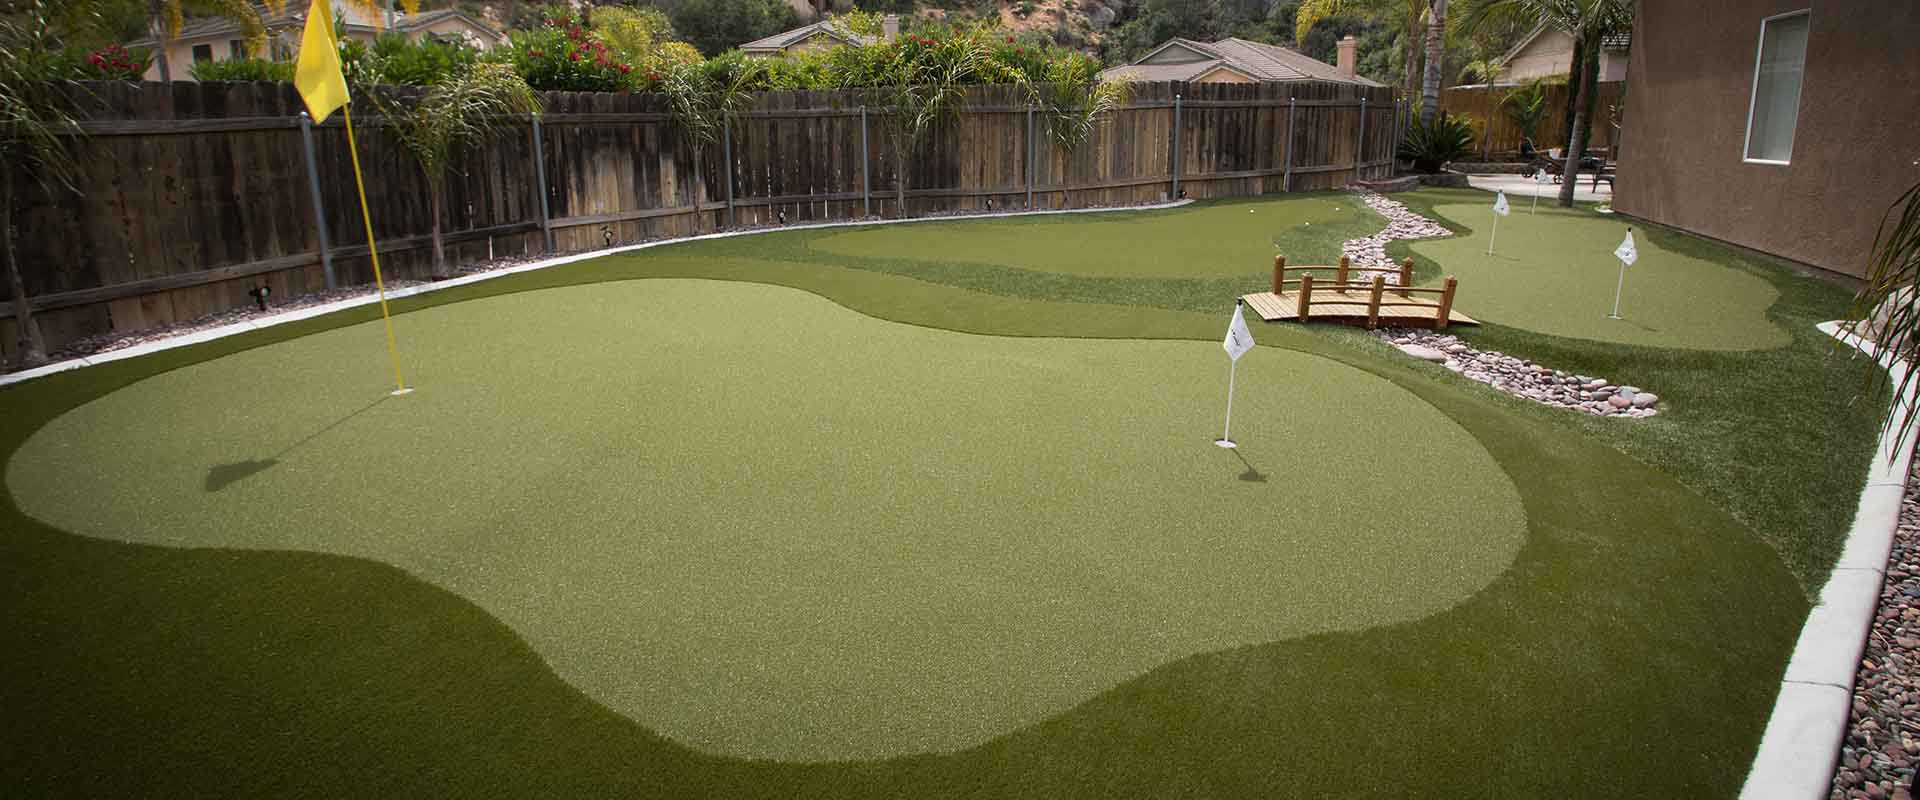 custom putting greens for your home by synlawn of georgia